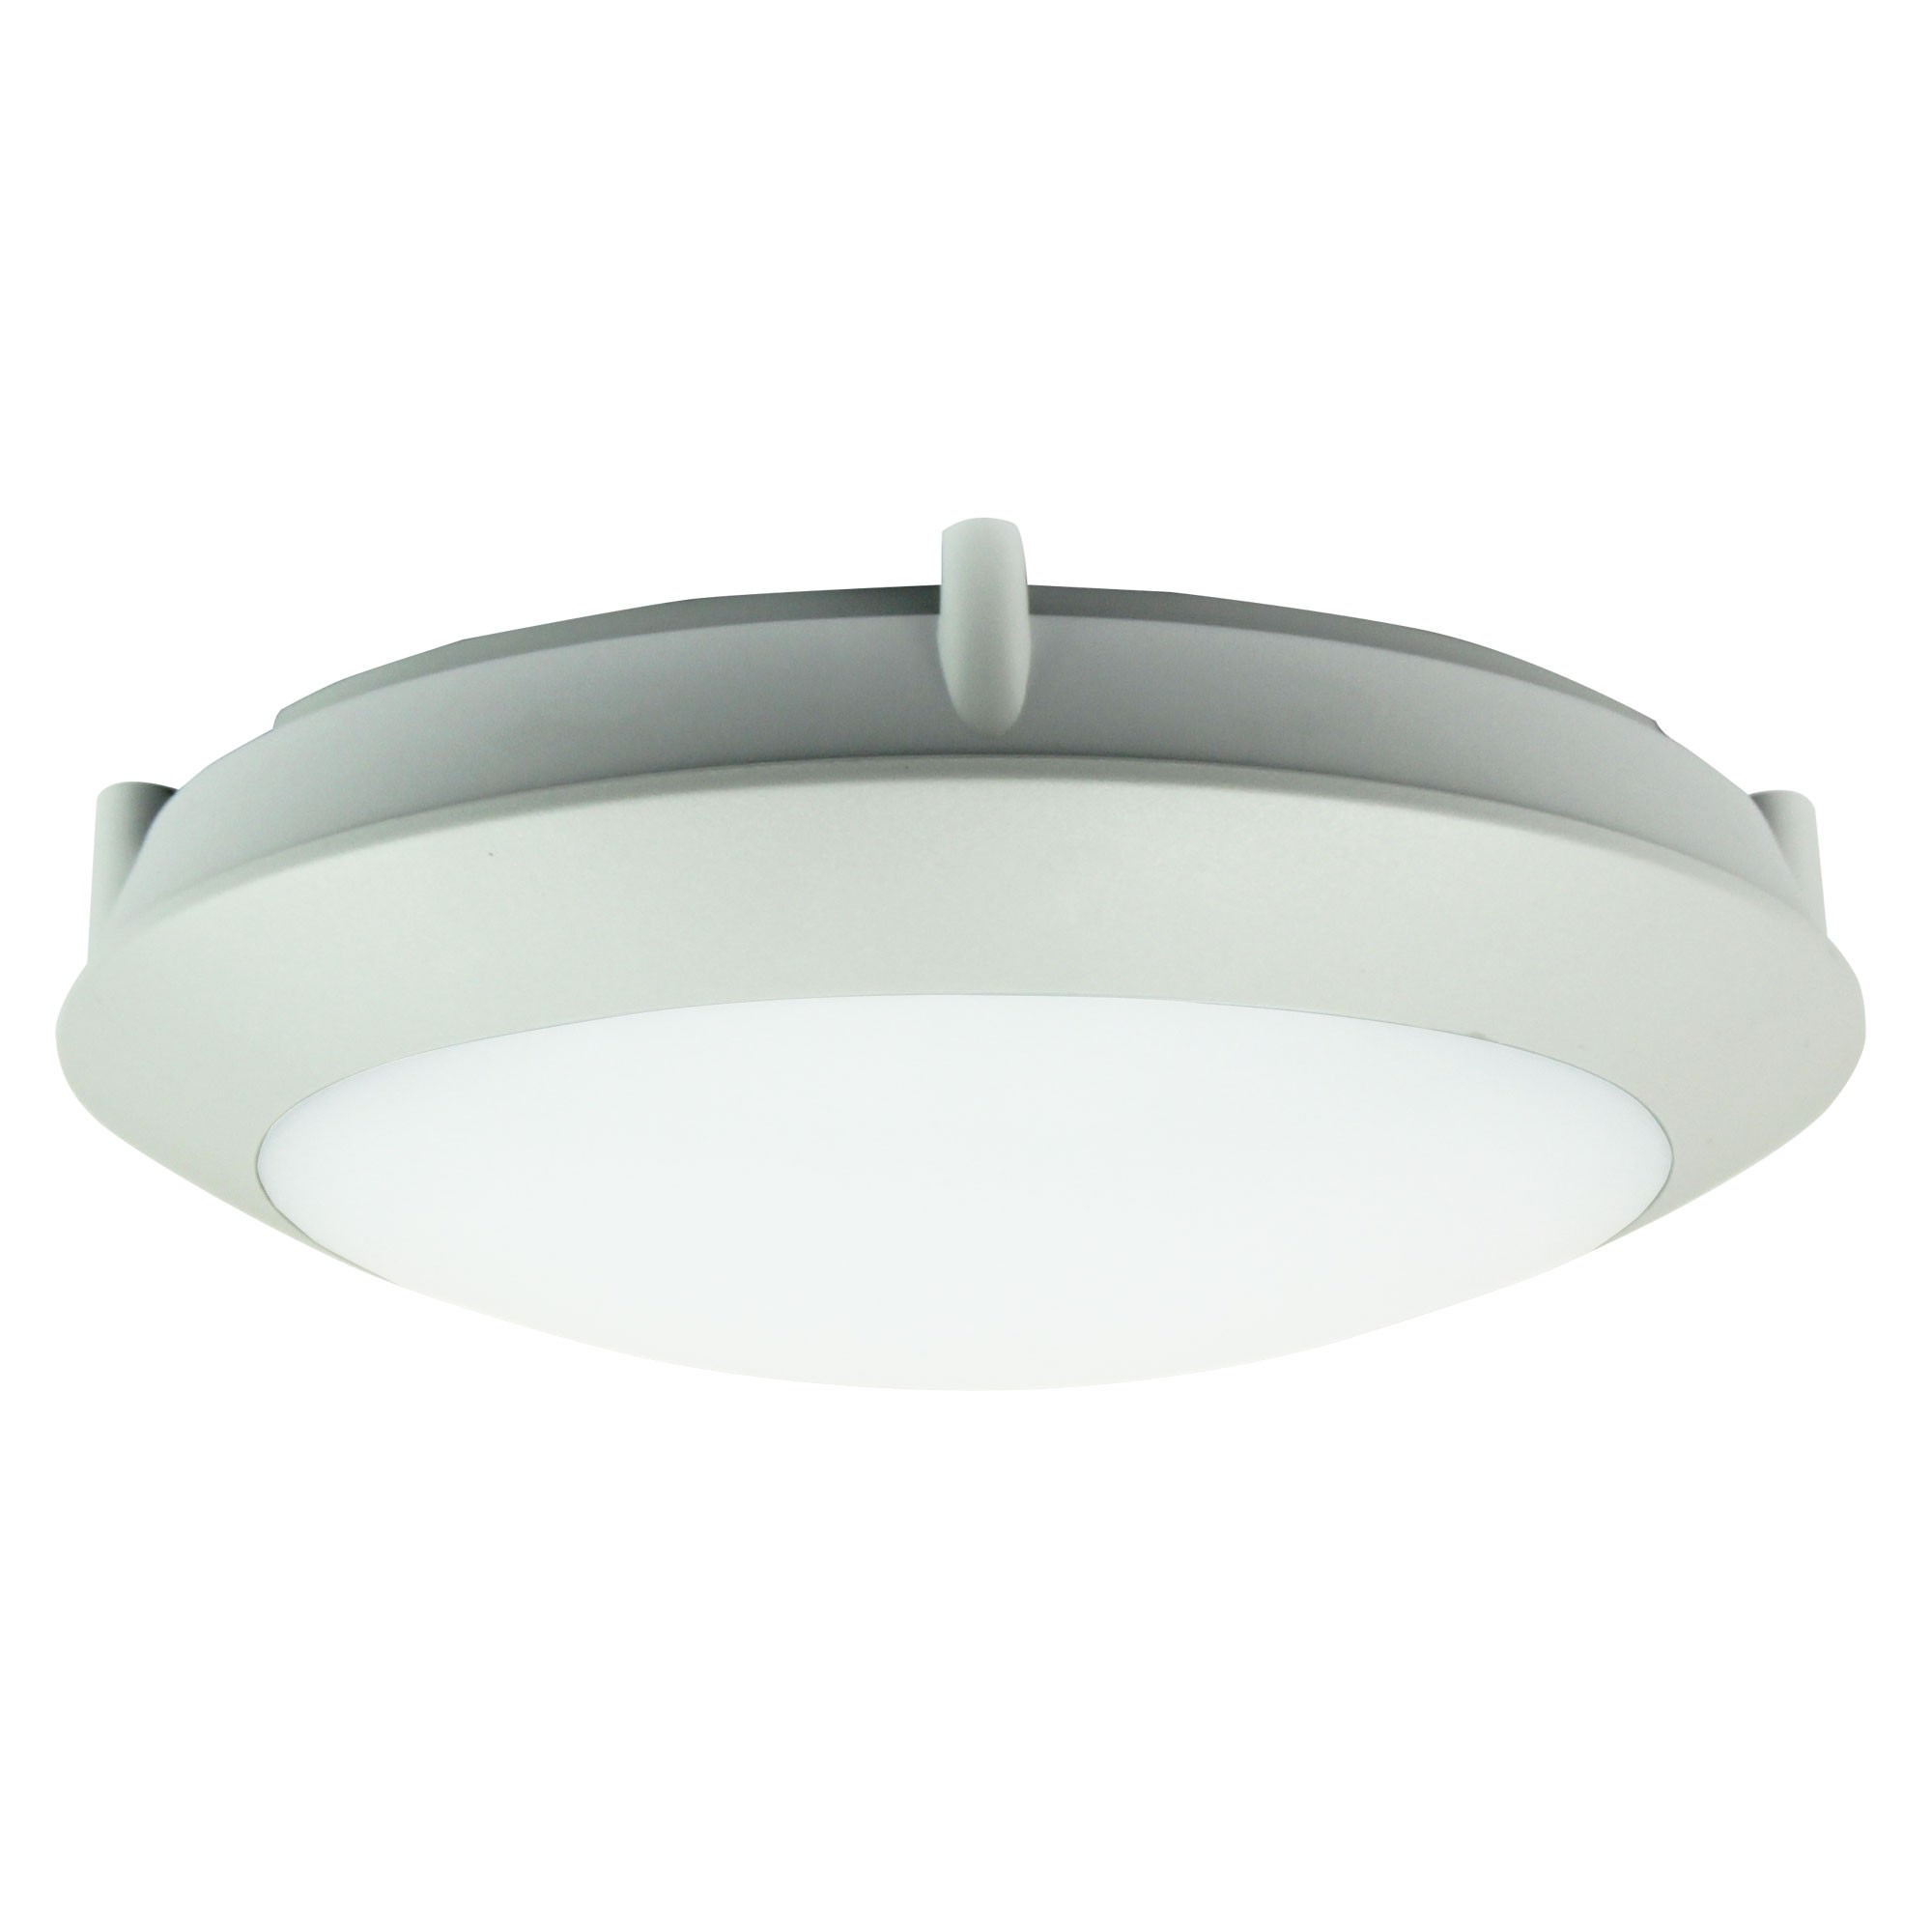 Duro IP66 Exterior LED Oyster Light, 20cm, Round, Grey